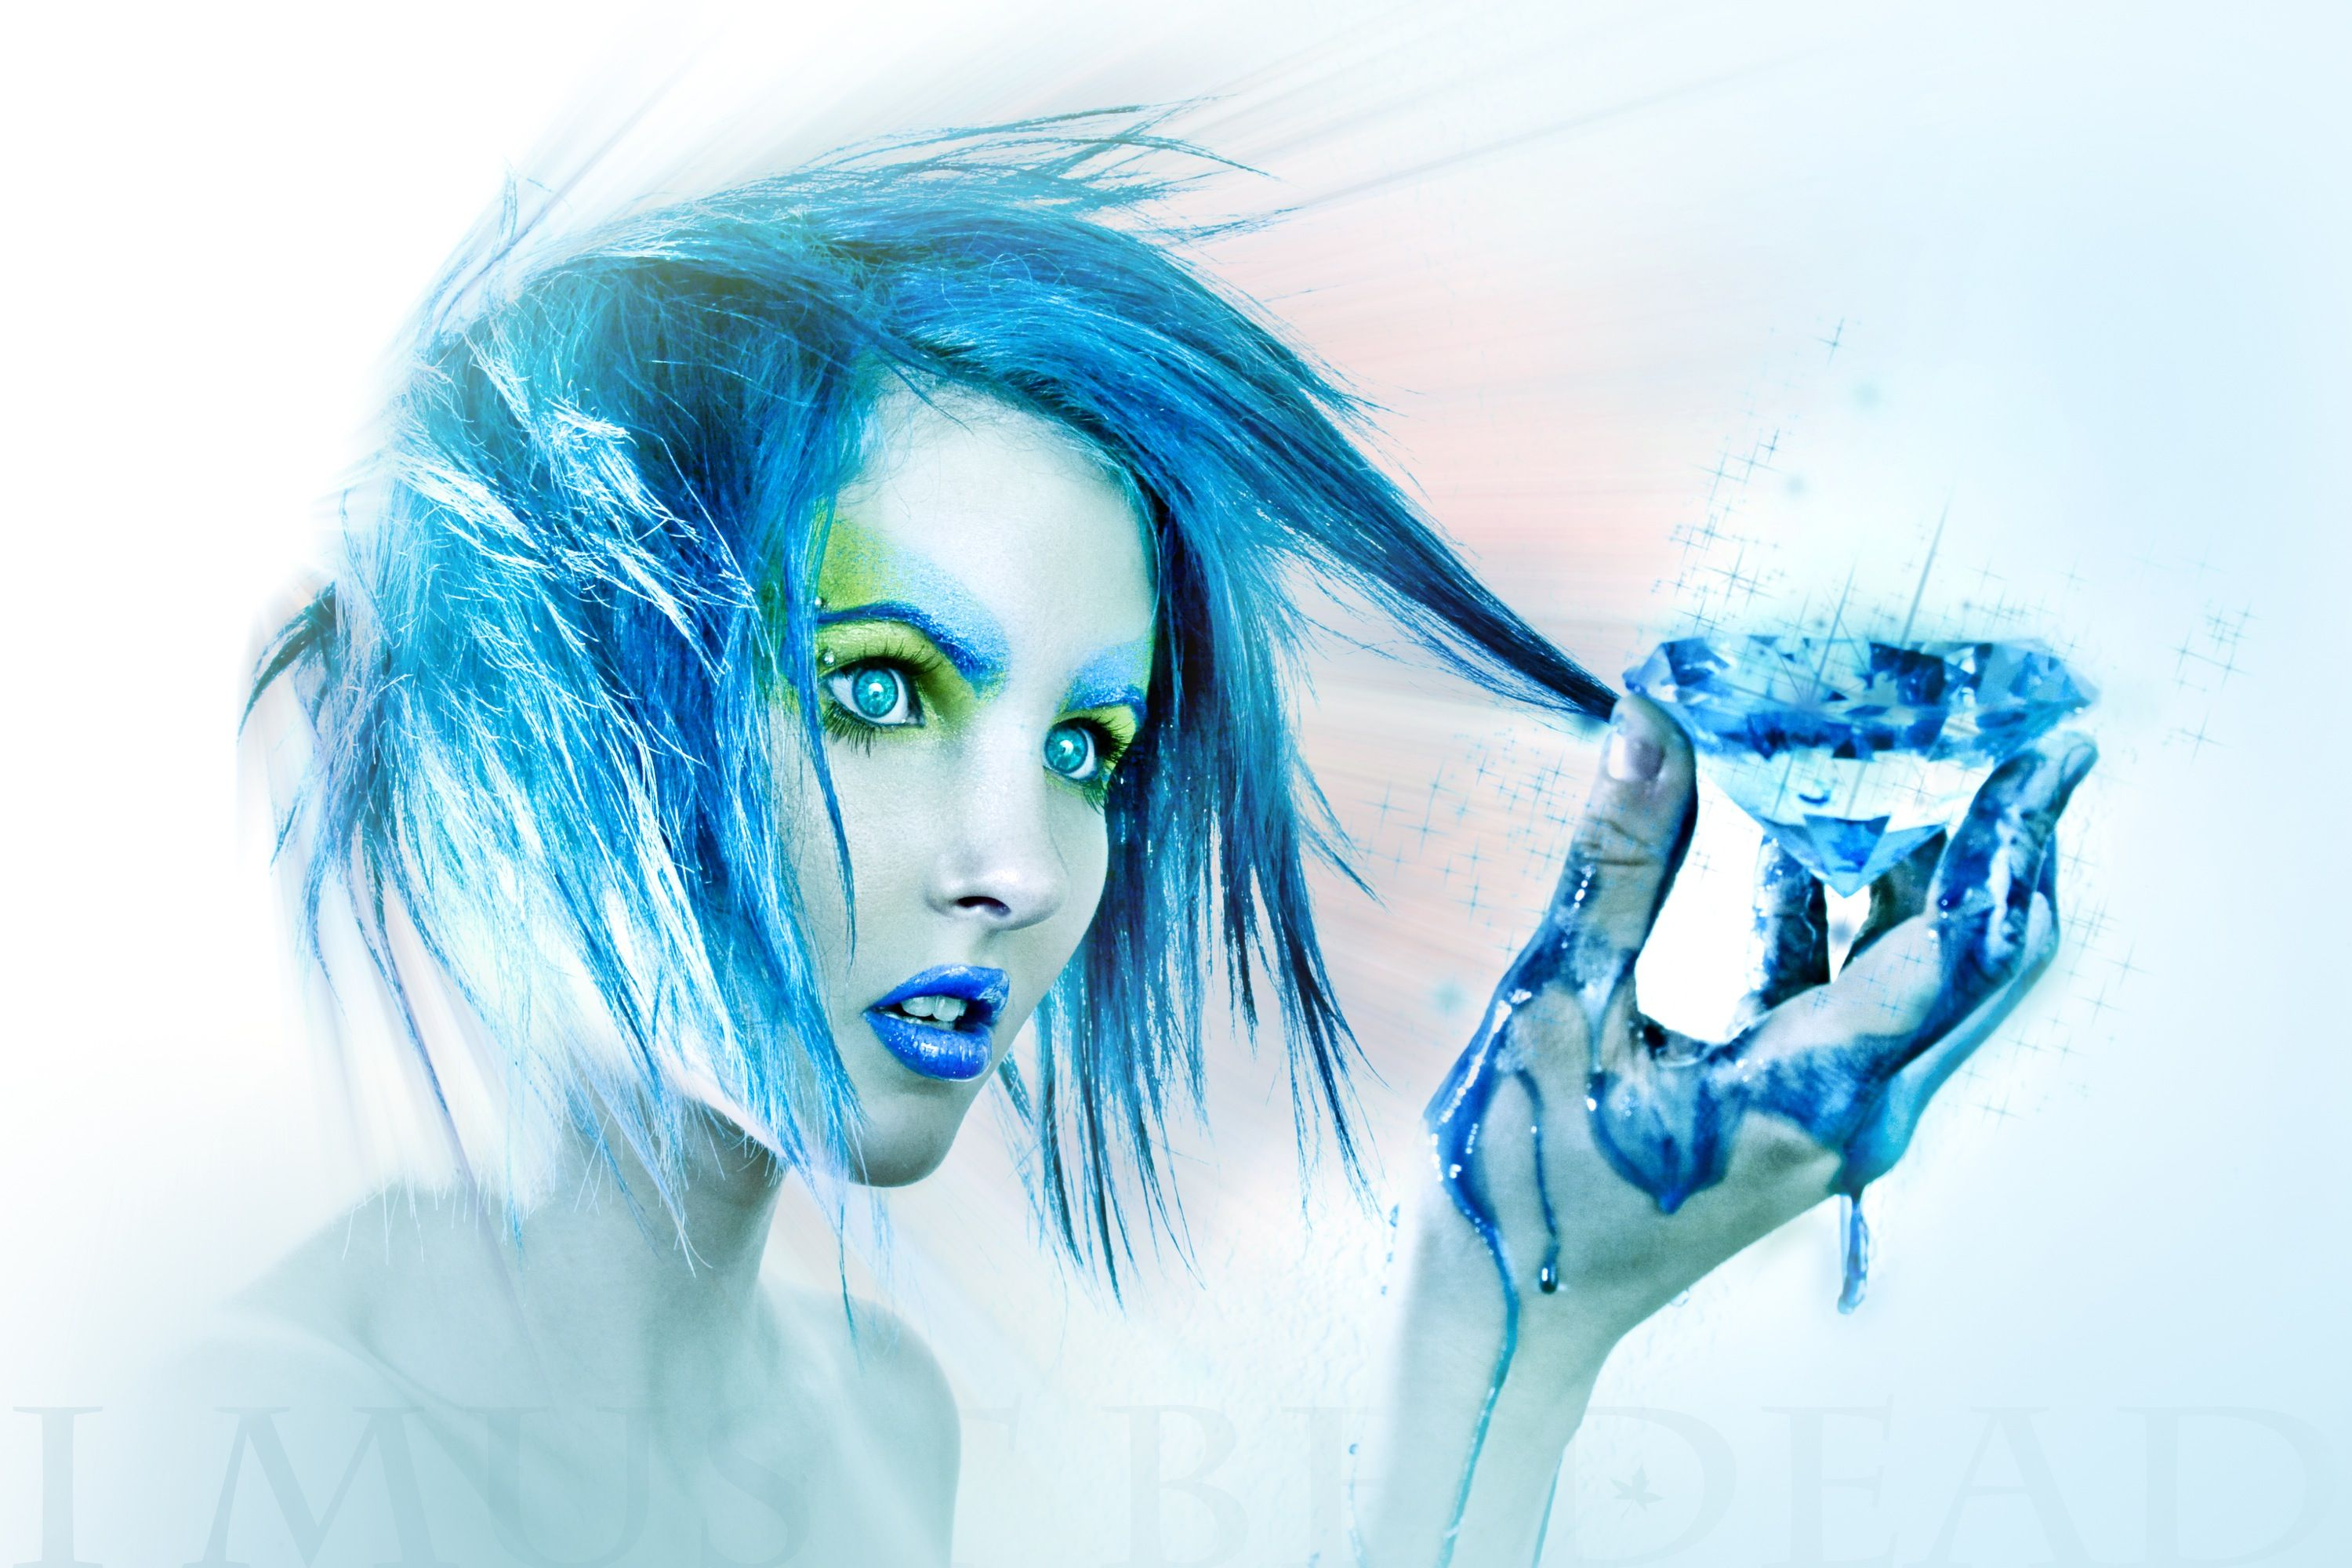 Blue Girl Wallpapers Top Free Blue Girl Backgrounds